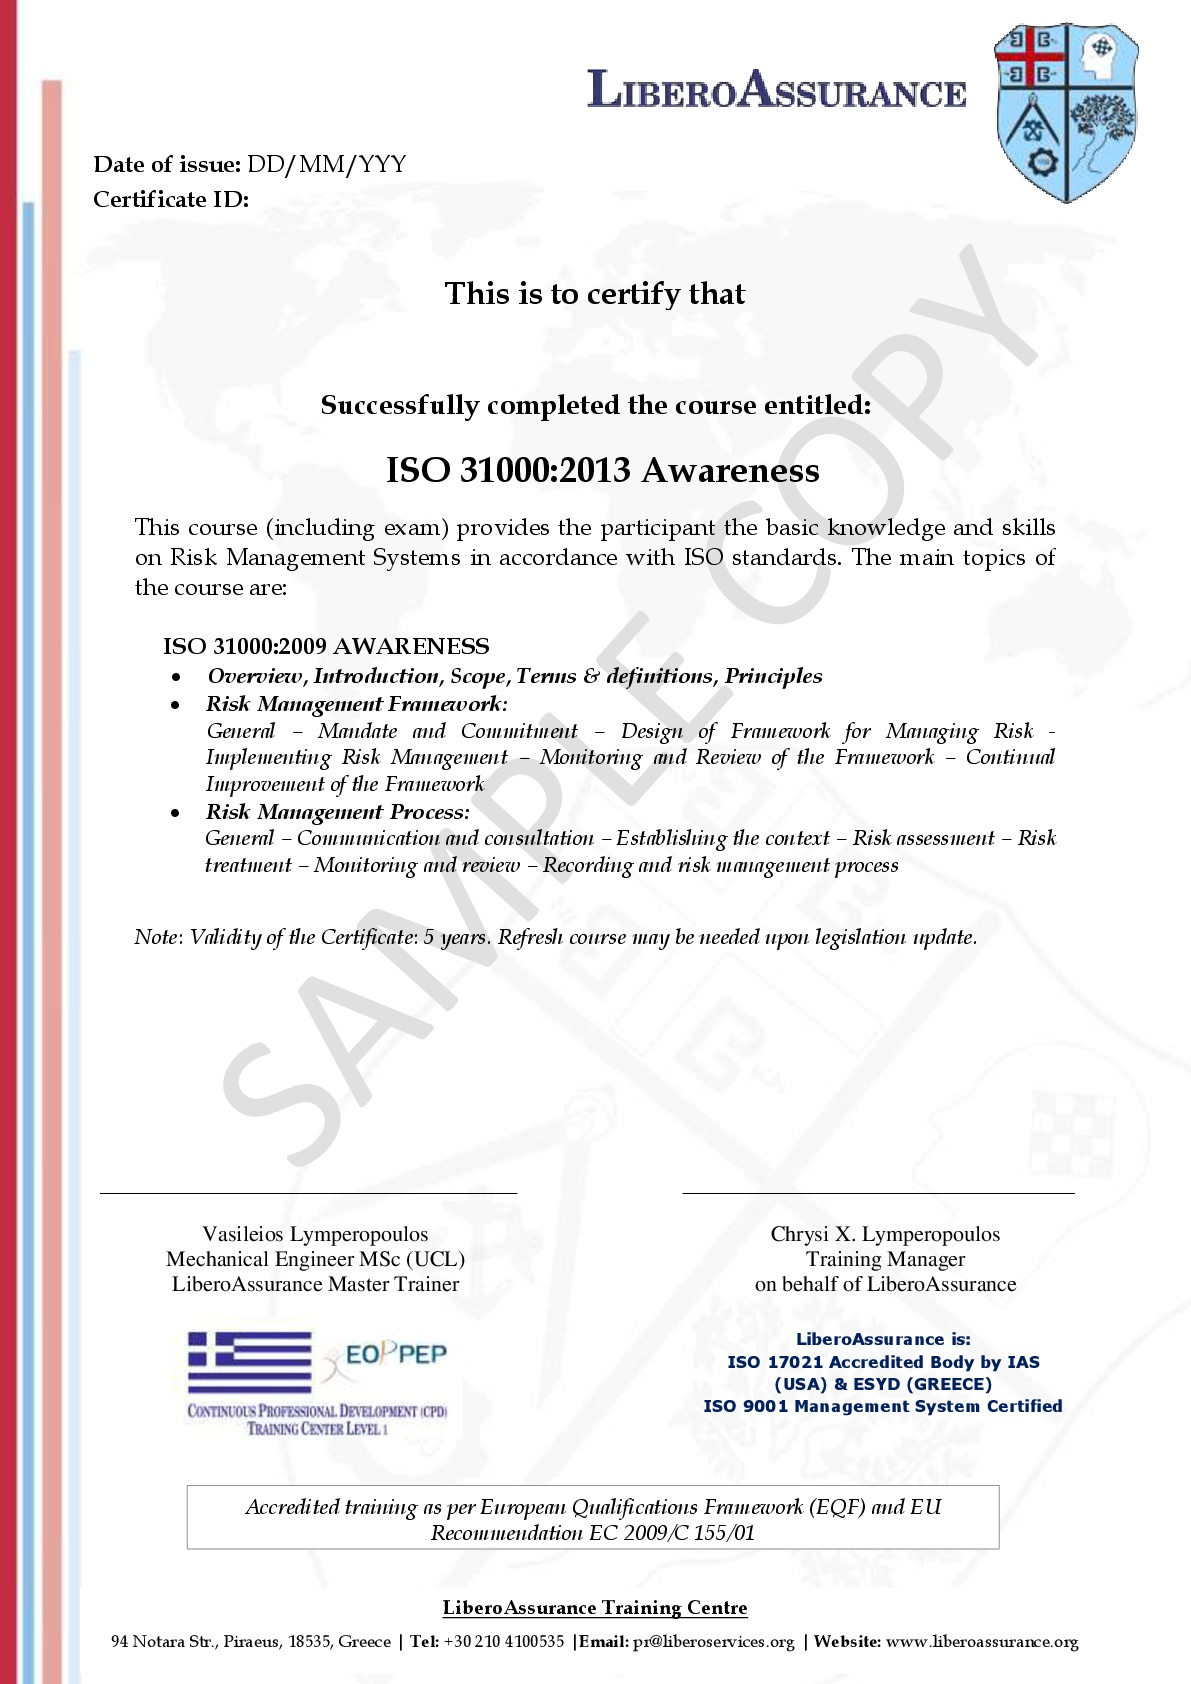 ISO 31000:2009 RMS Awareness - Libero Services